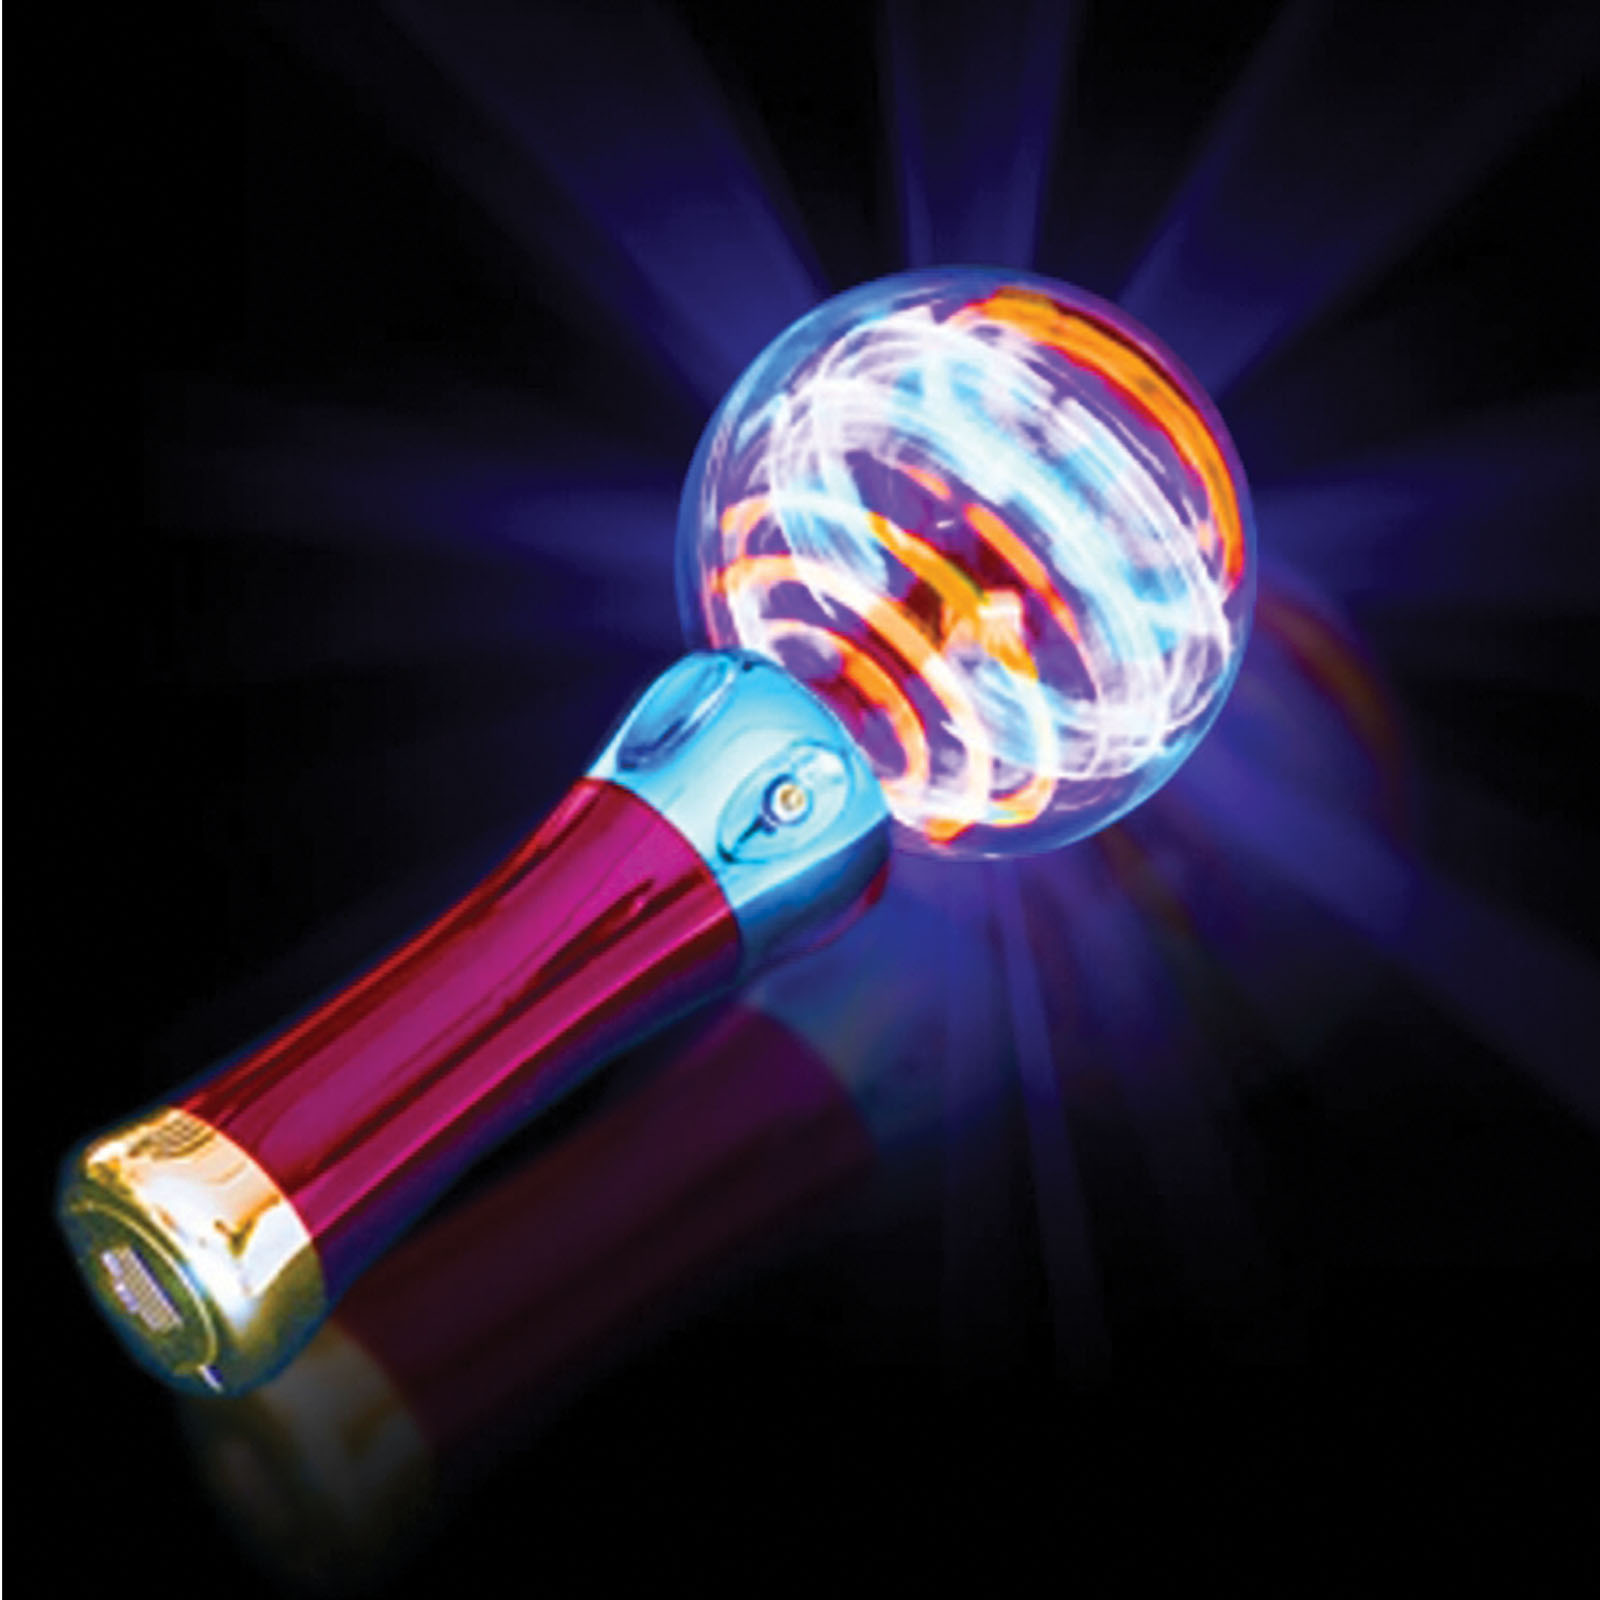 Rinco Patriotic Battery Powered Psychedelic Light Spinner LED Toy